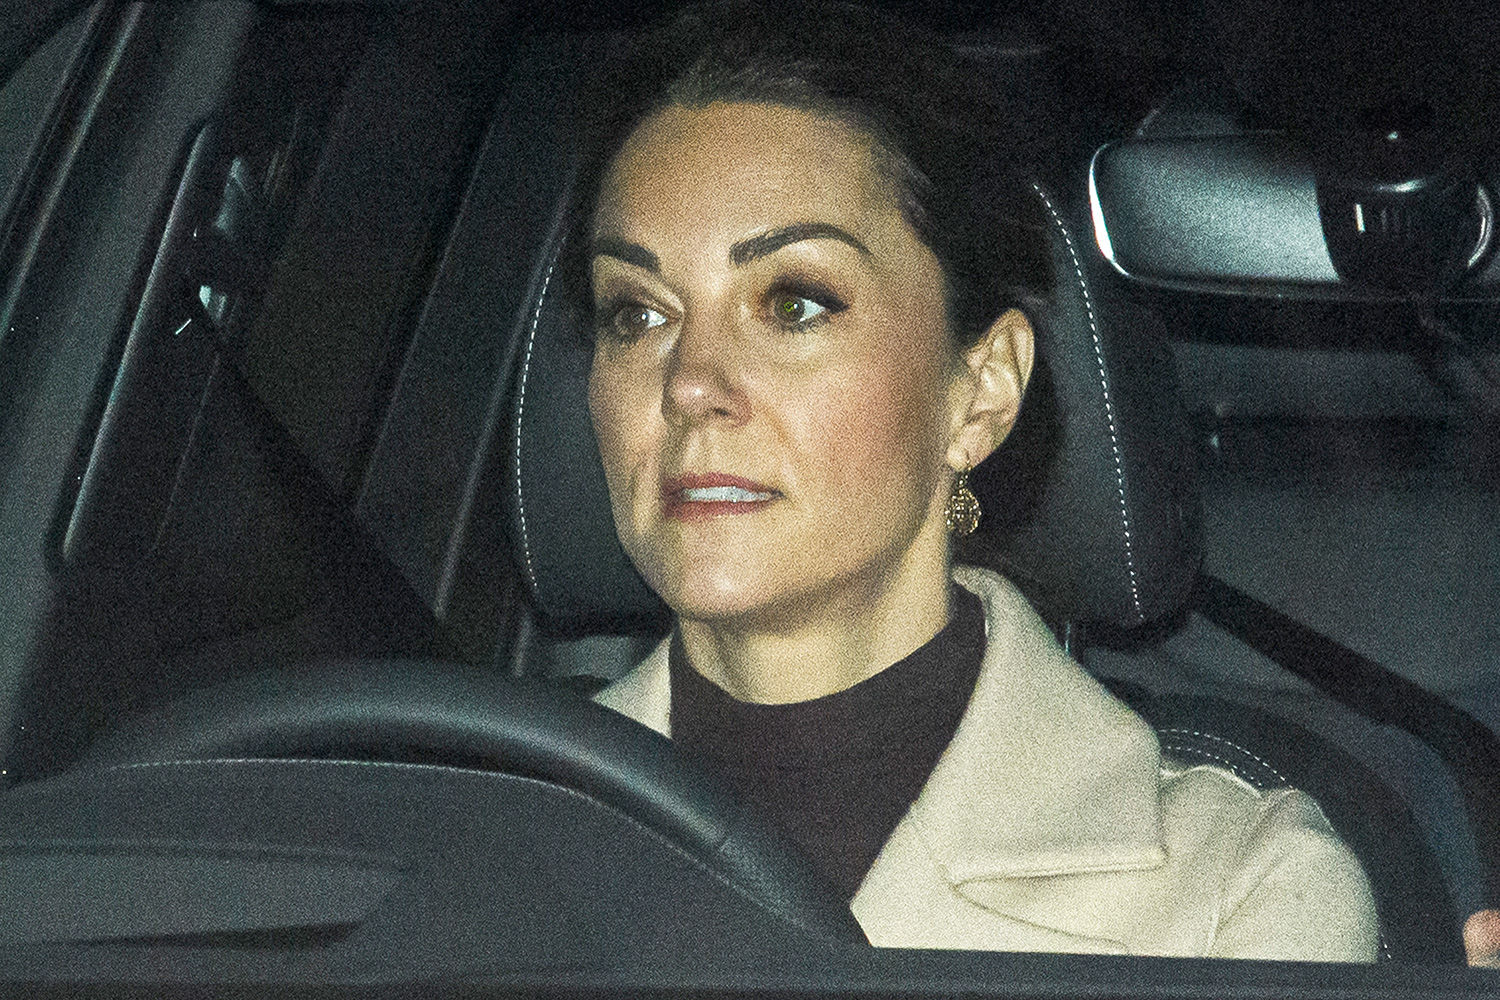 CATHERINE DUCHESS OF CAMBRIDGE is seen leaving Kensington Palace in London